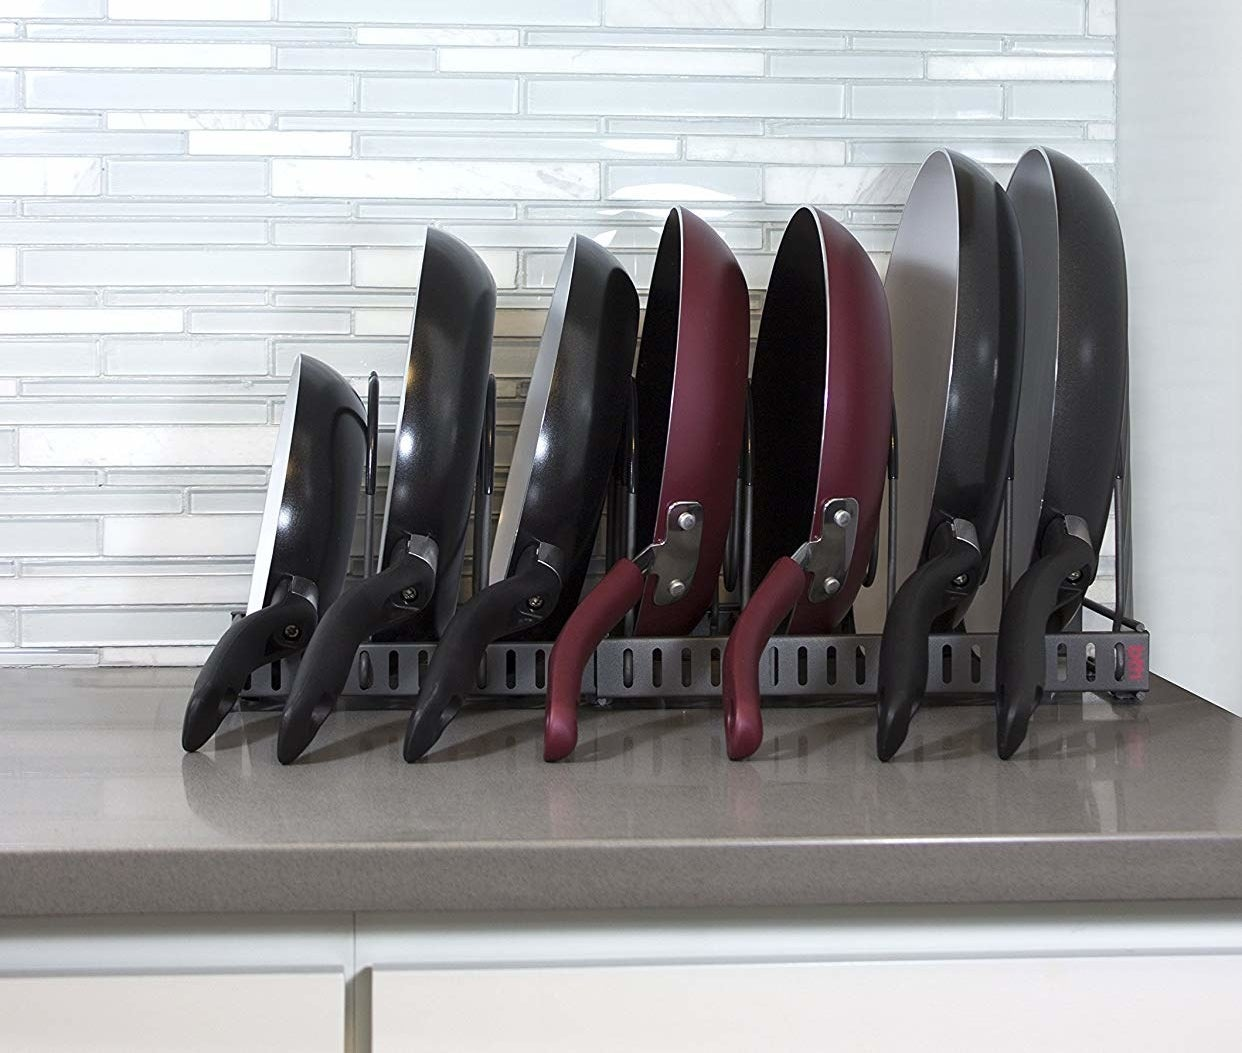 the rack with seven skillets stacked on their sides of graduating sizes; the thick wire dividers keep the pans about an inch apart from each other